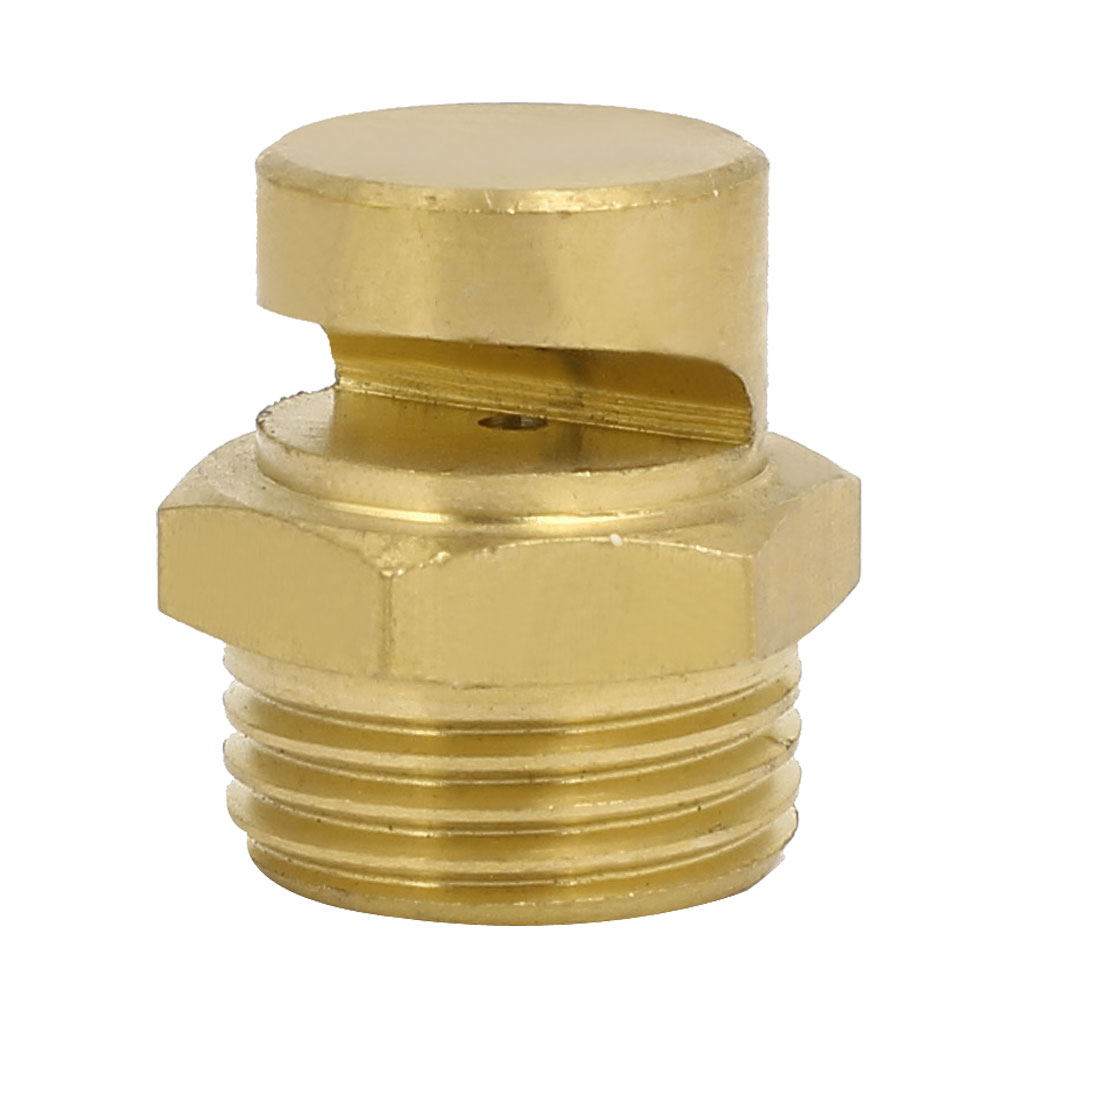 1/2BSP Male Thread 170 Degree Angle Flat Fan Spray Tip Brass Tone